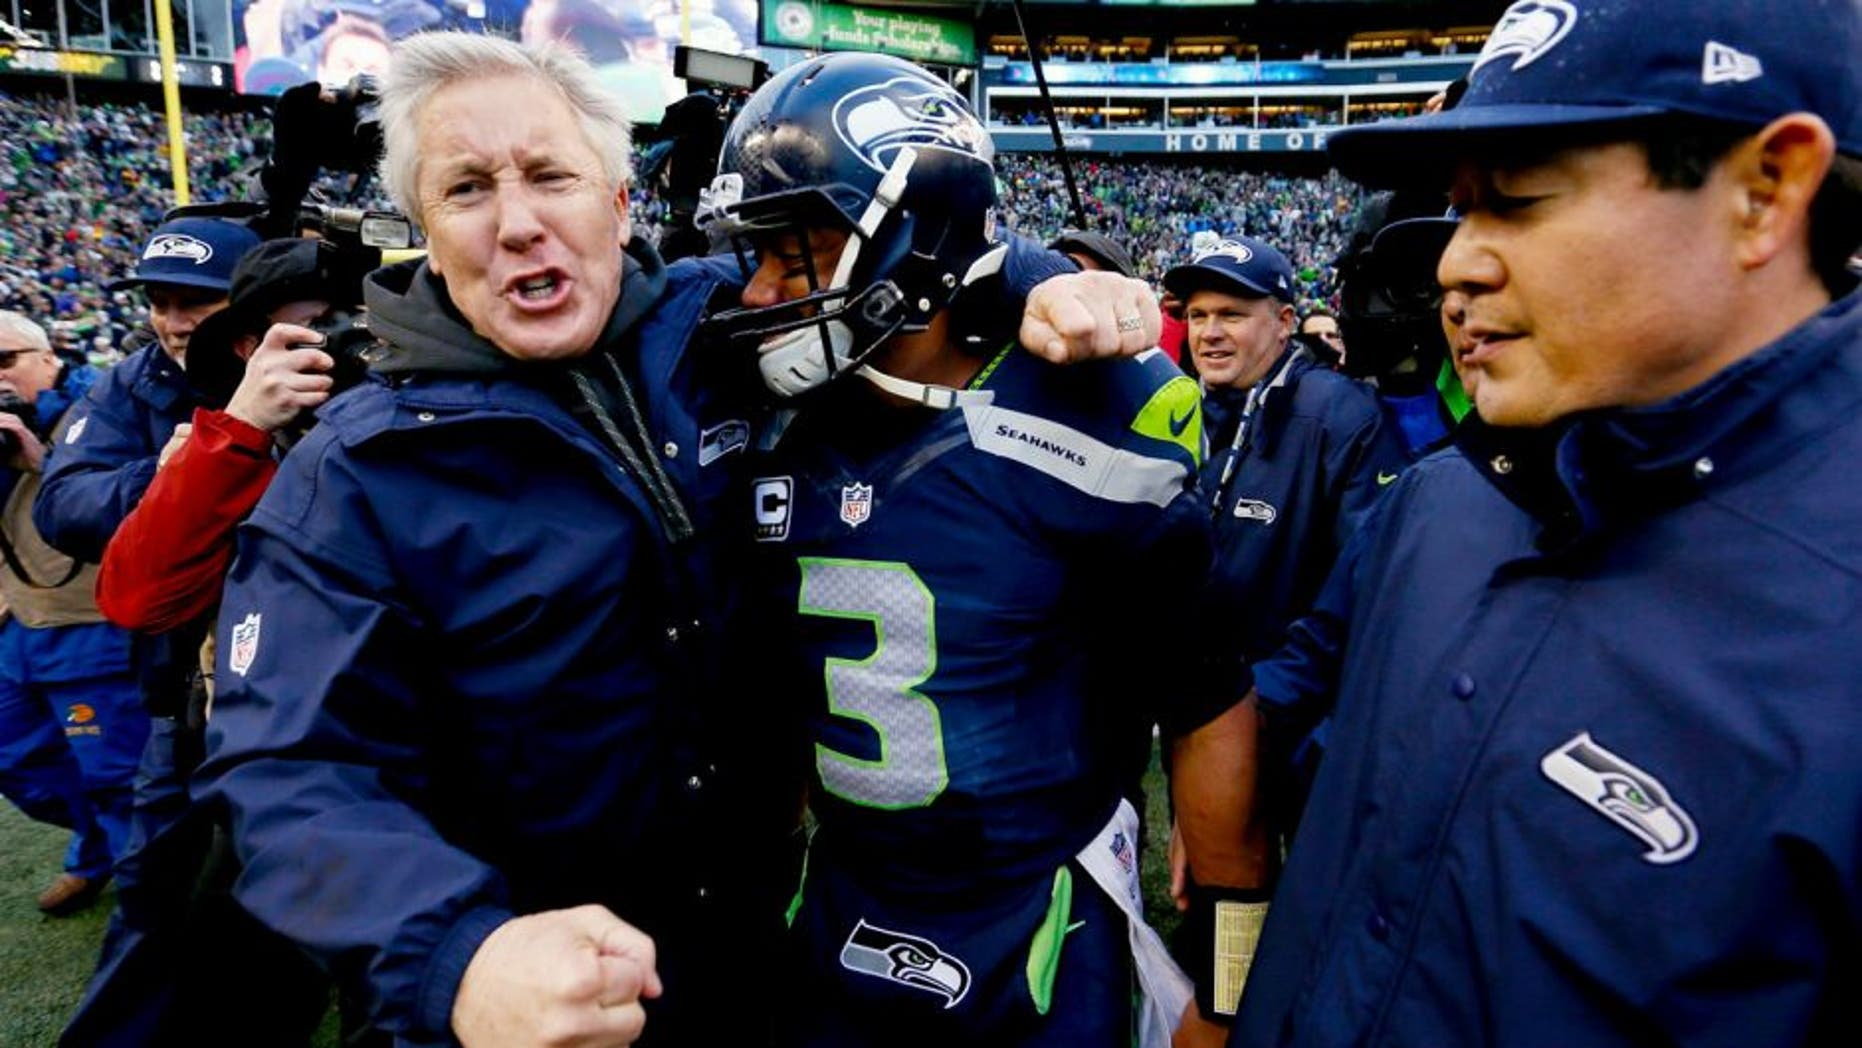 SEATTLE, WA - JANUARY 18: Head coach Pete Carroll and Russell Wilson #3 of the Seattle Seahawks celebrate after the Seahawks 28-22 victory in overtime against the Green Bay Packers during the 2015 NFC Championship game at CenturyLink Field on January 18, 2015 in Seattle, Washington. (Photo by Kevin C. Cox/Getty Images)